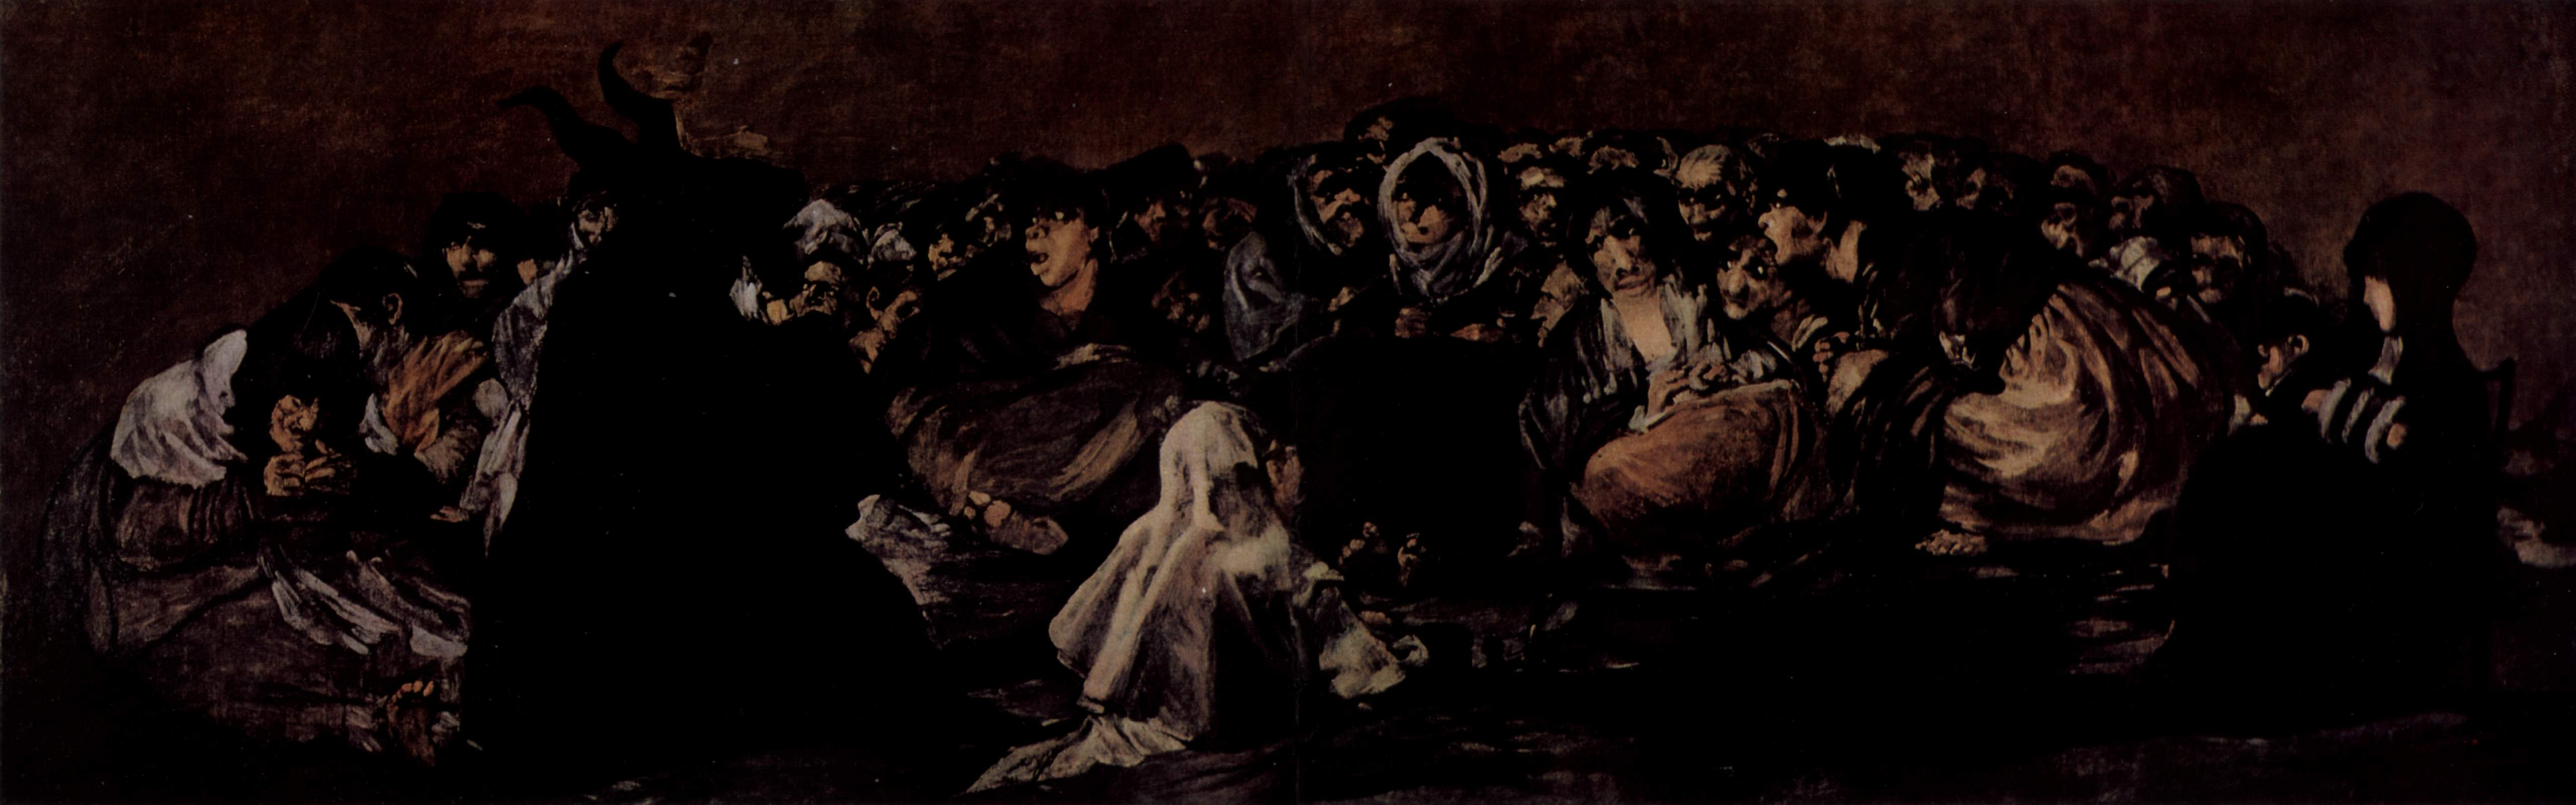 Goya Pinturas Negras File Witches 39 Sabbath By Goya Jpg Wikimedia Commons